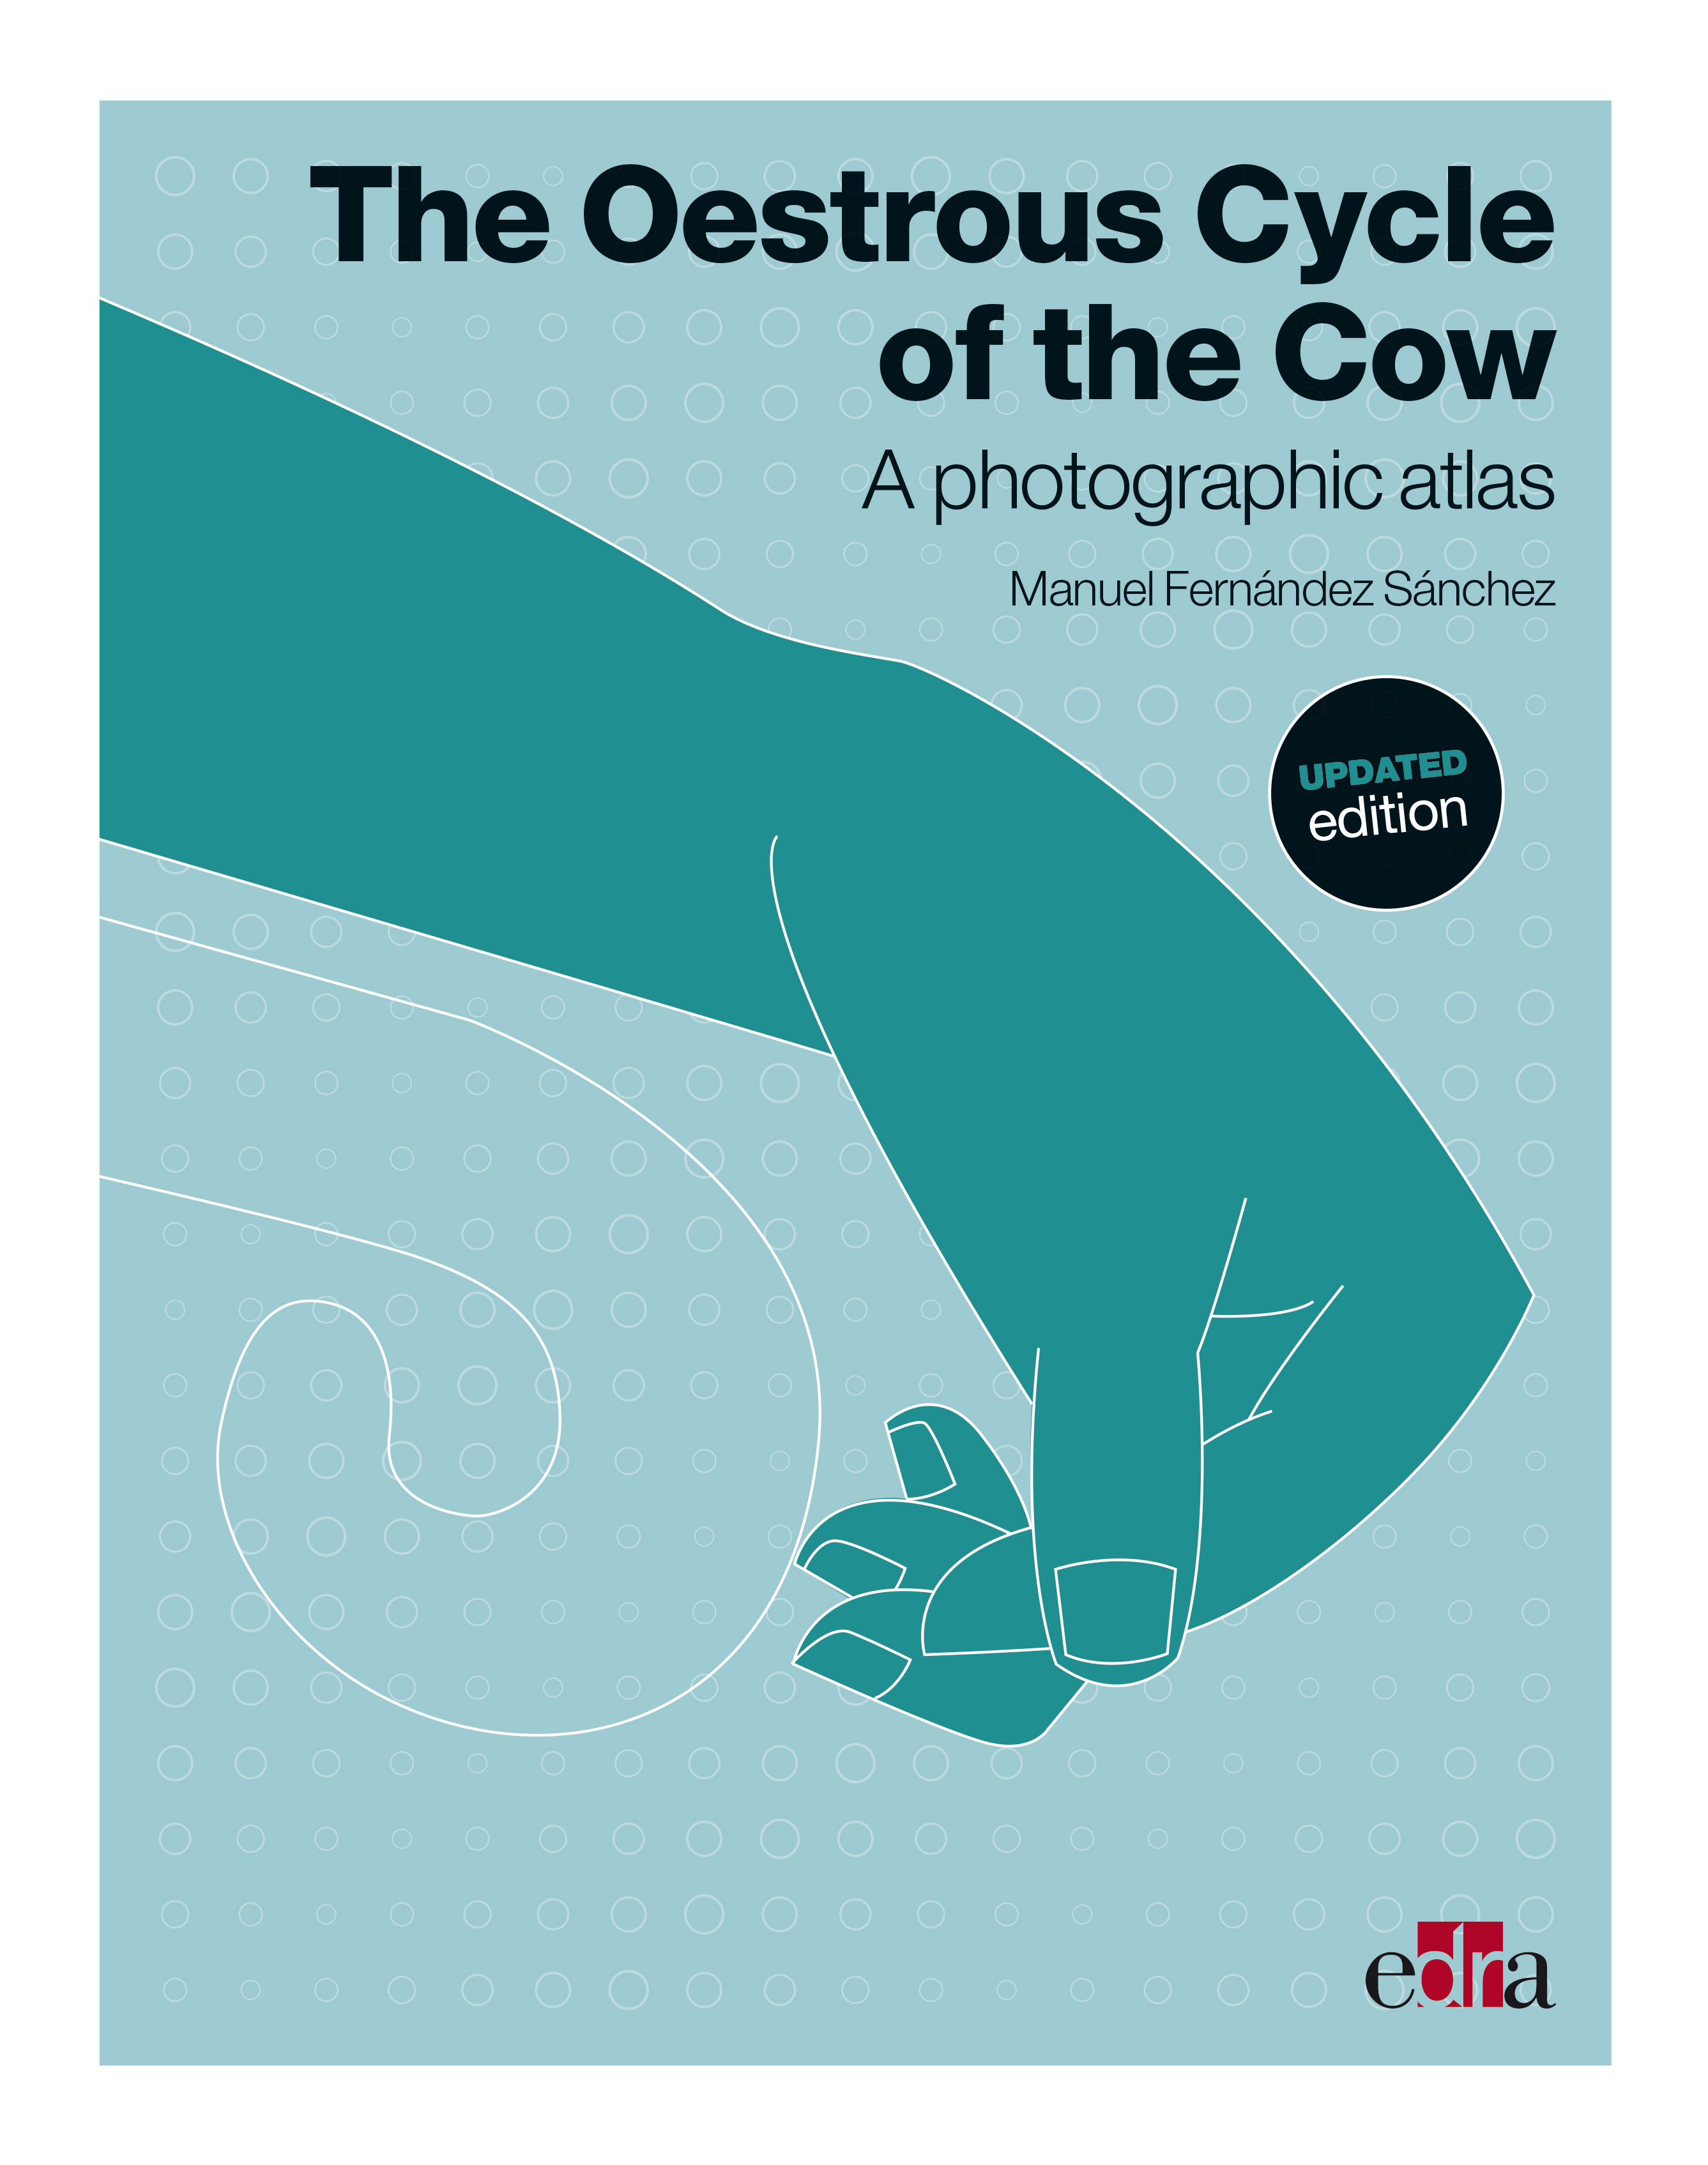 The Oestrous Cycle of the Cow. Updated edition